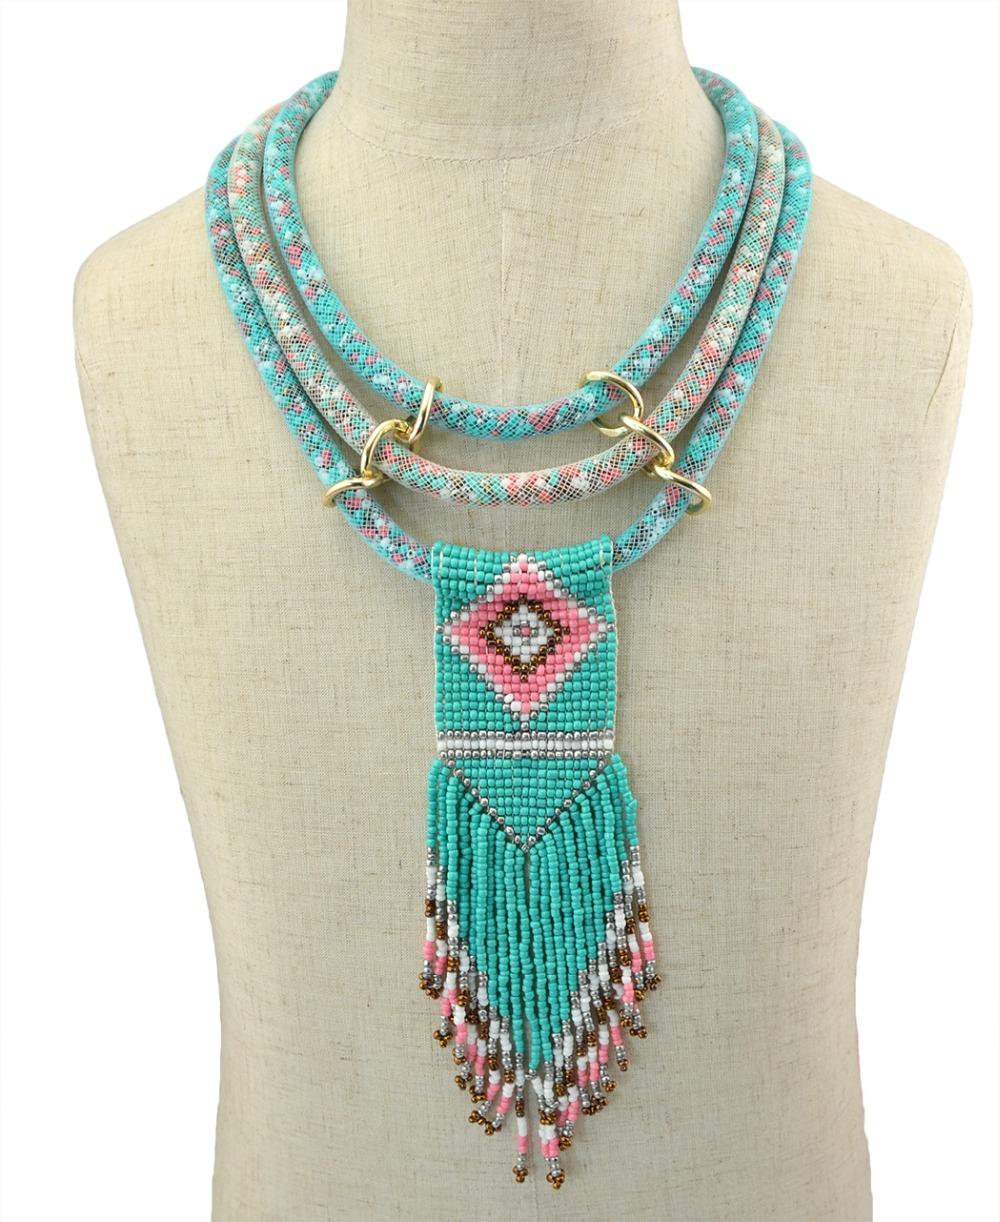 Idealway Handmade 3 Layers Resins Beads Pendant Necklaces For Women Boho Ethnic Tribal Long Tassel Drop Earring & Necklace Sets